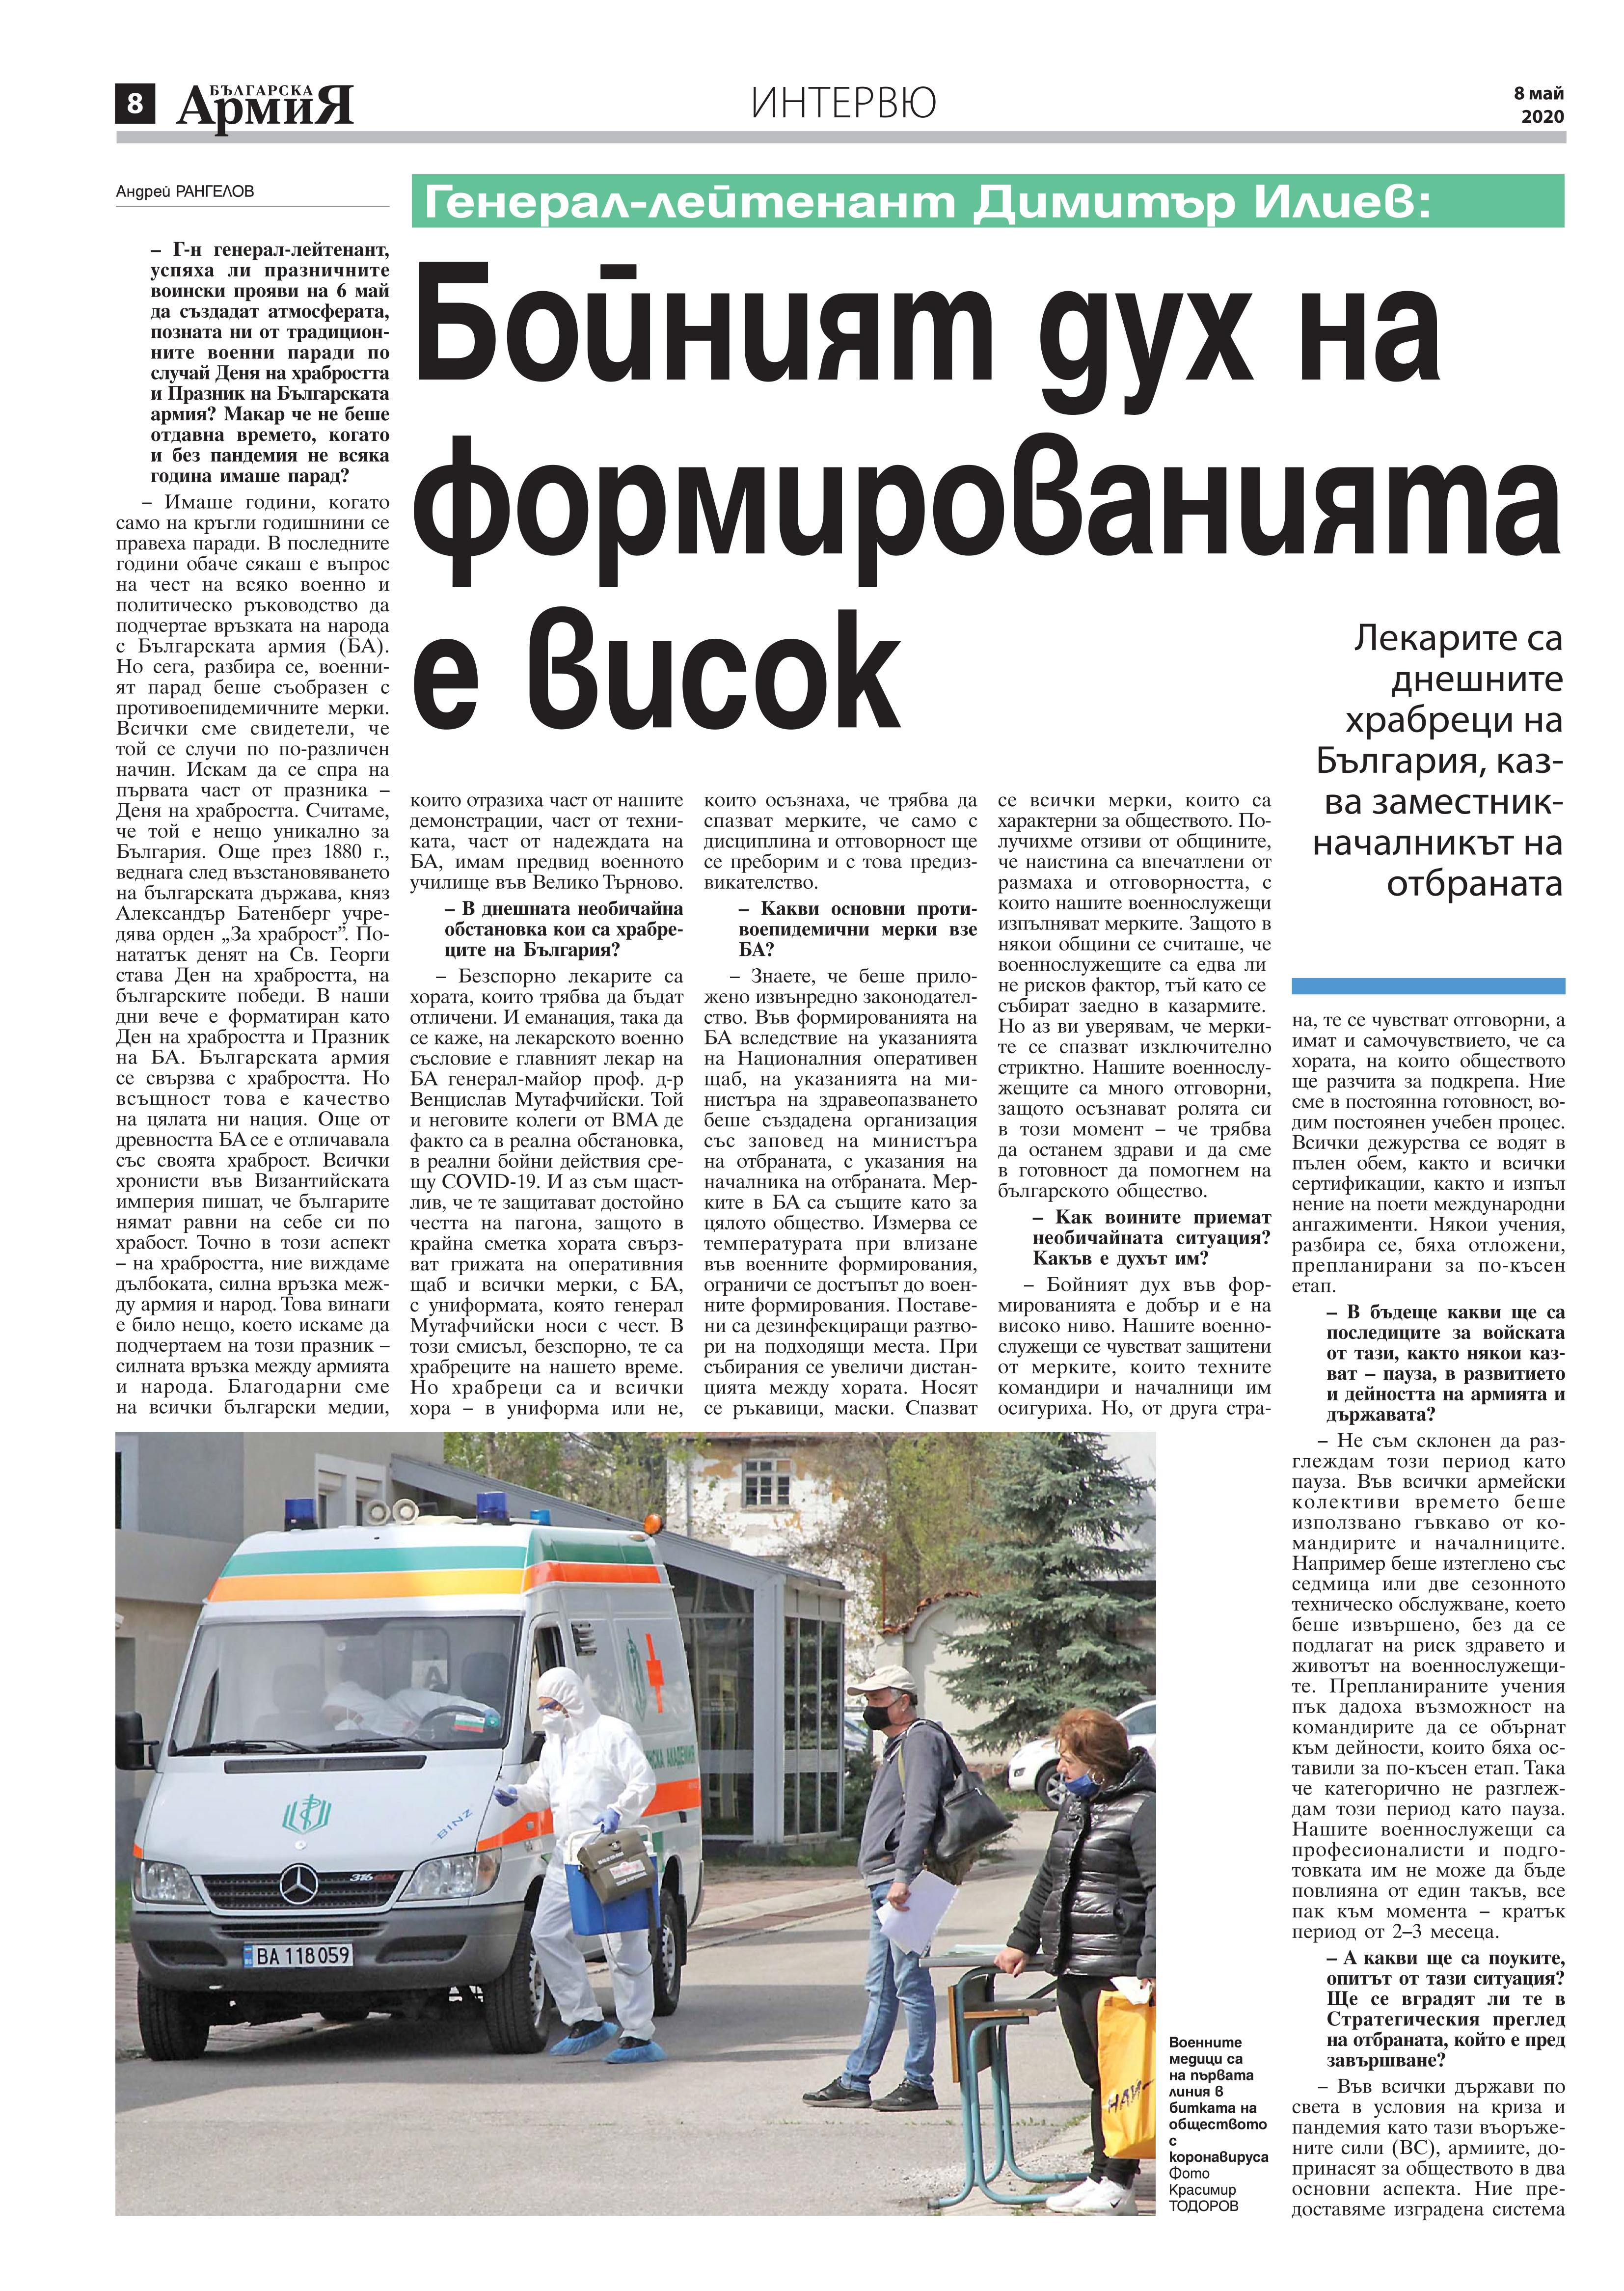 https://www.armymedia.bg/wp-content/uploads/2015/06/08.page1_-135.jpg